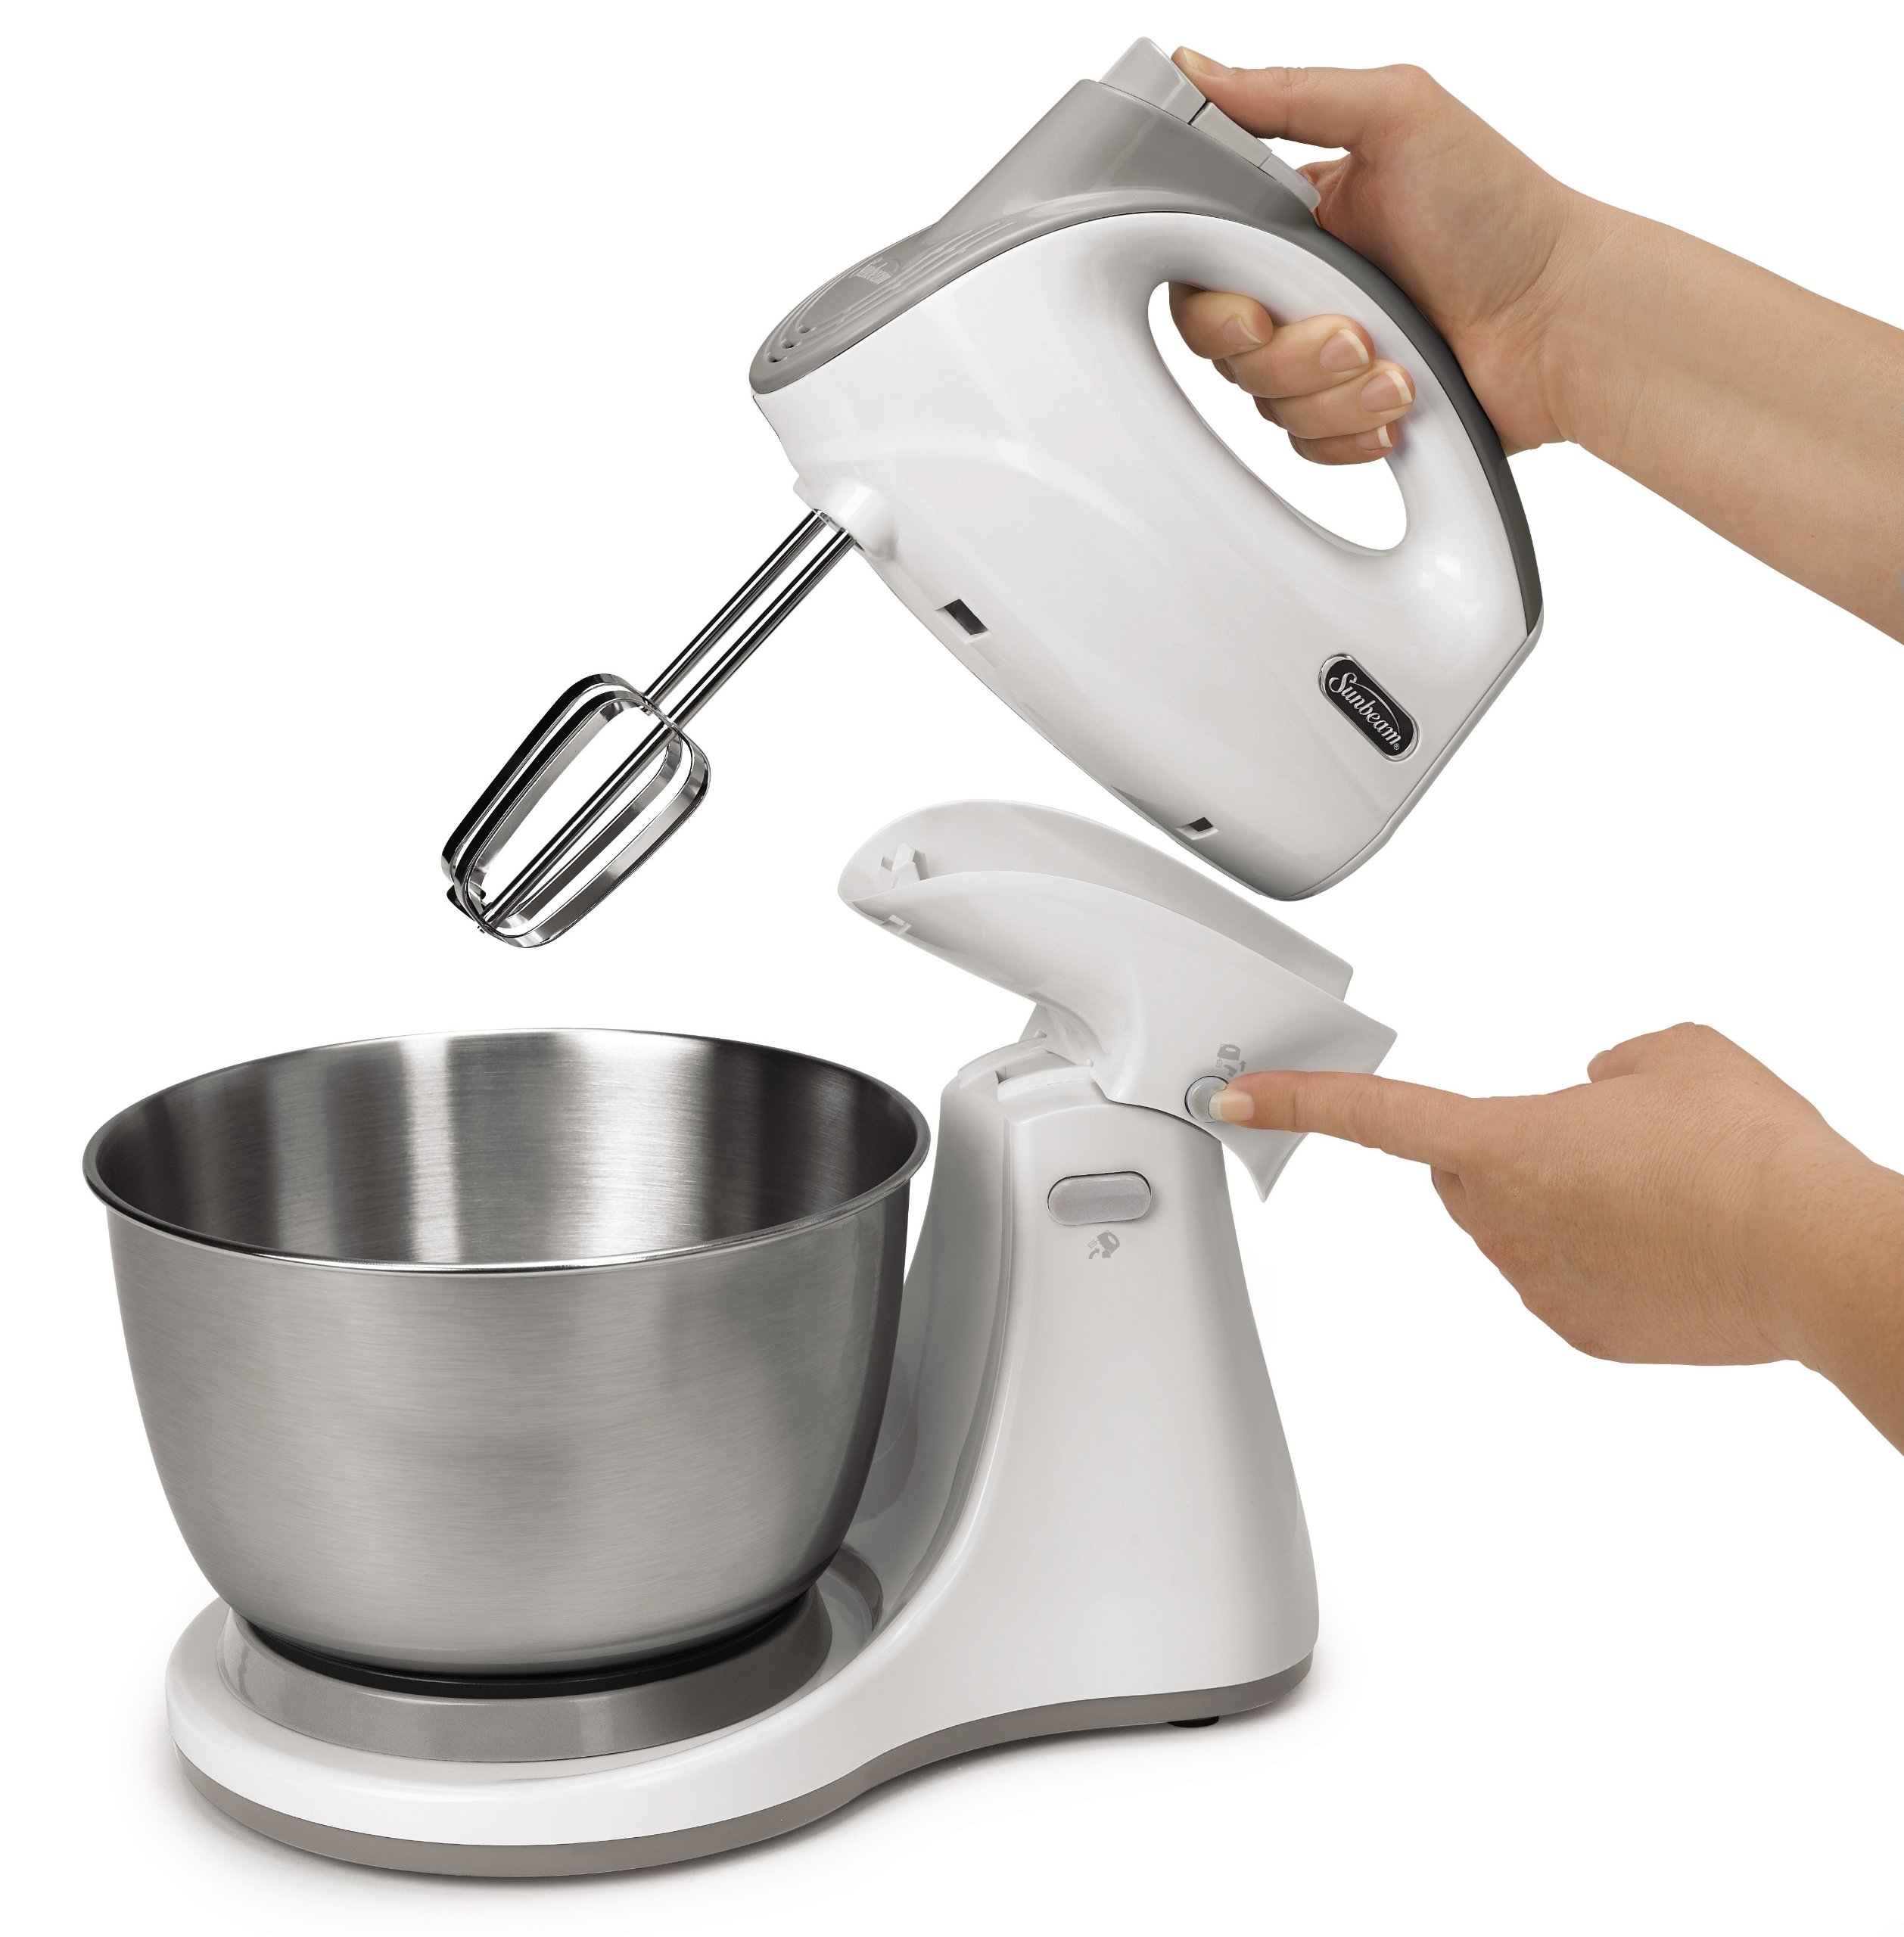 Sunbeam FPSBHS0301 Mixmaster Dual Function Hand and Stand Mixer, 250 W, 5 Speed, White by Sunbeam